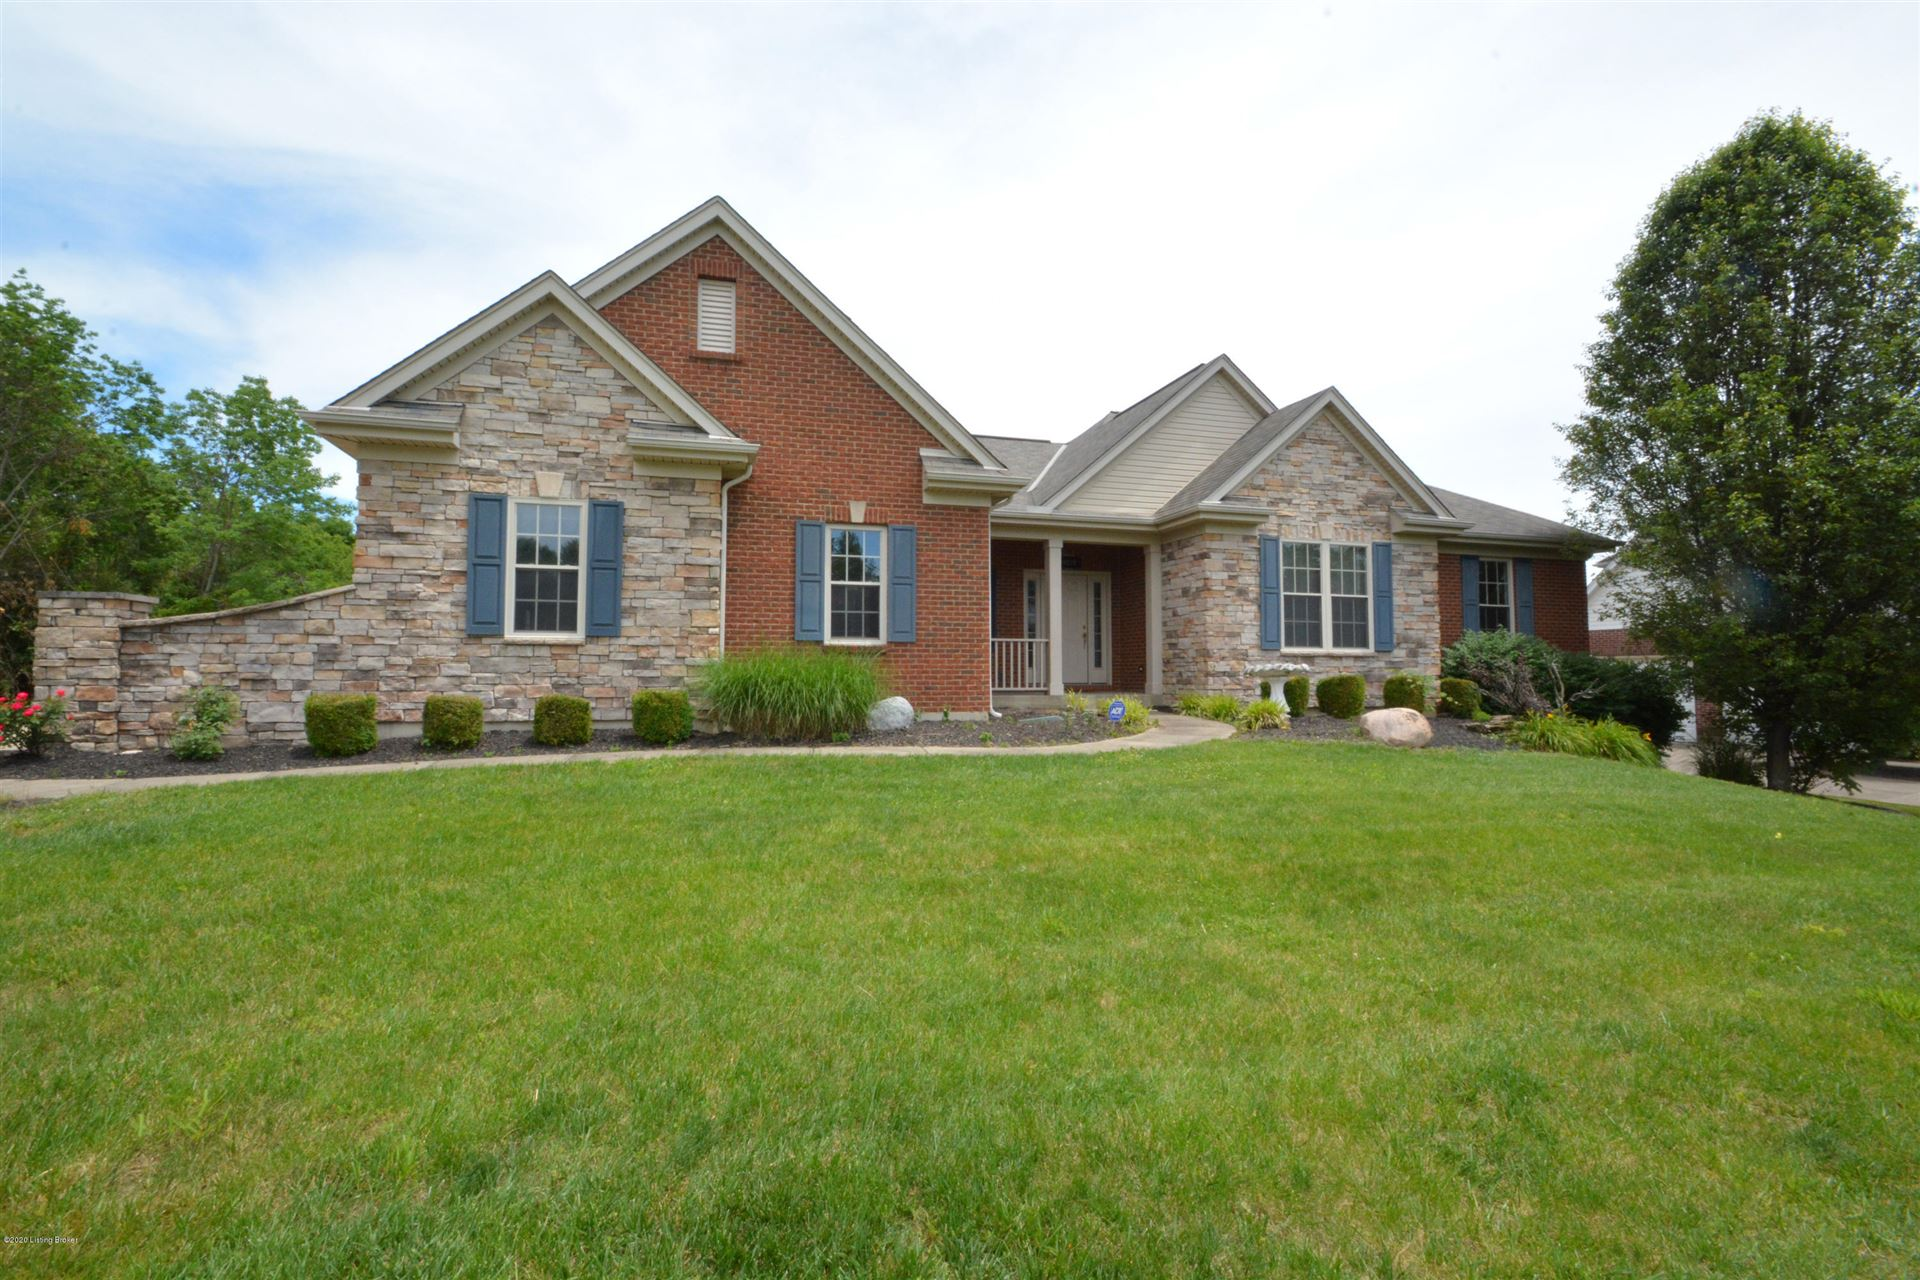 Property Image Of 9270 Tranquility Dr In Florence, Ky